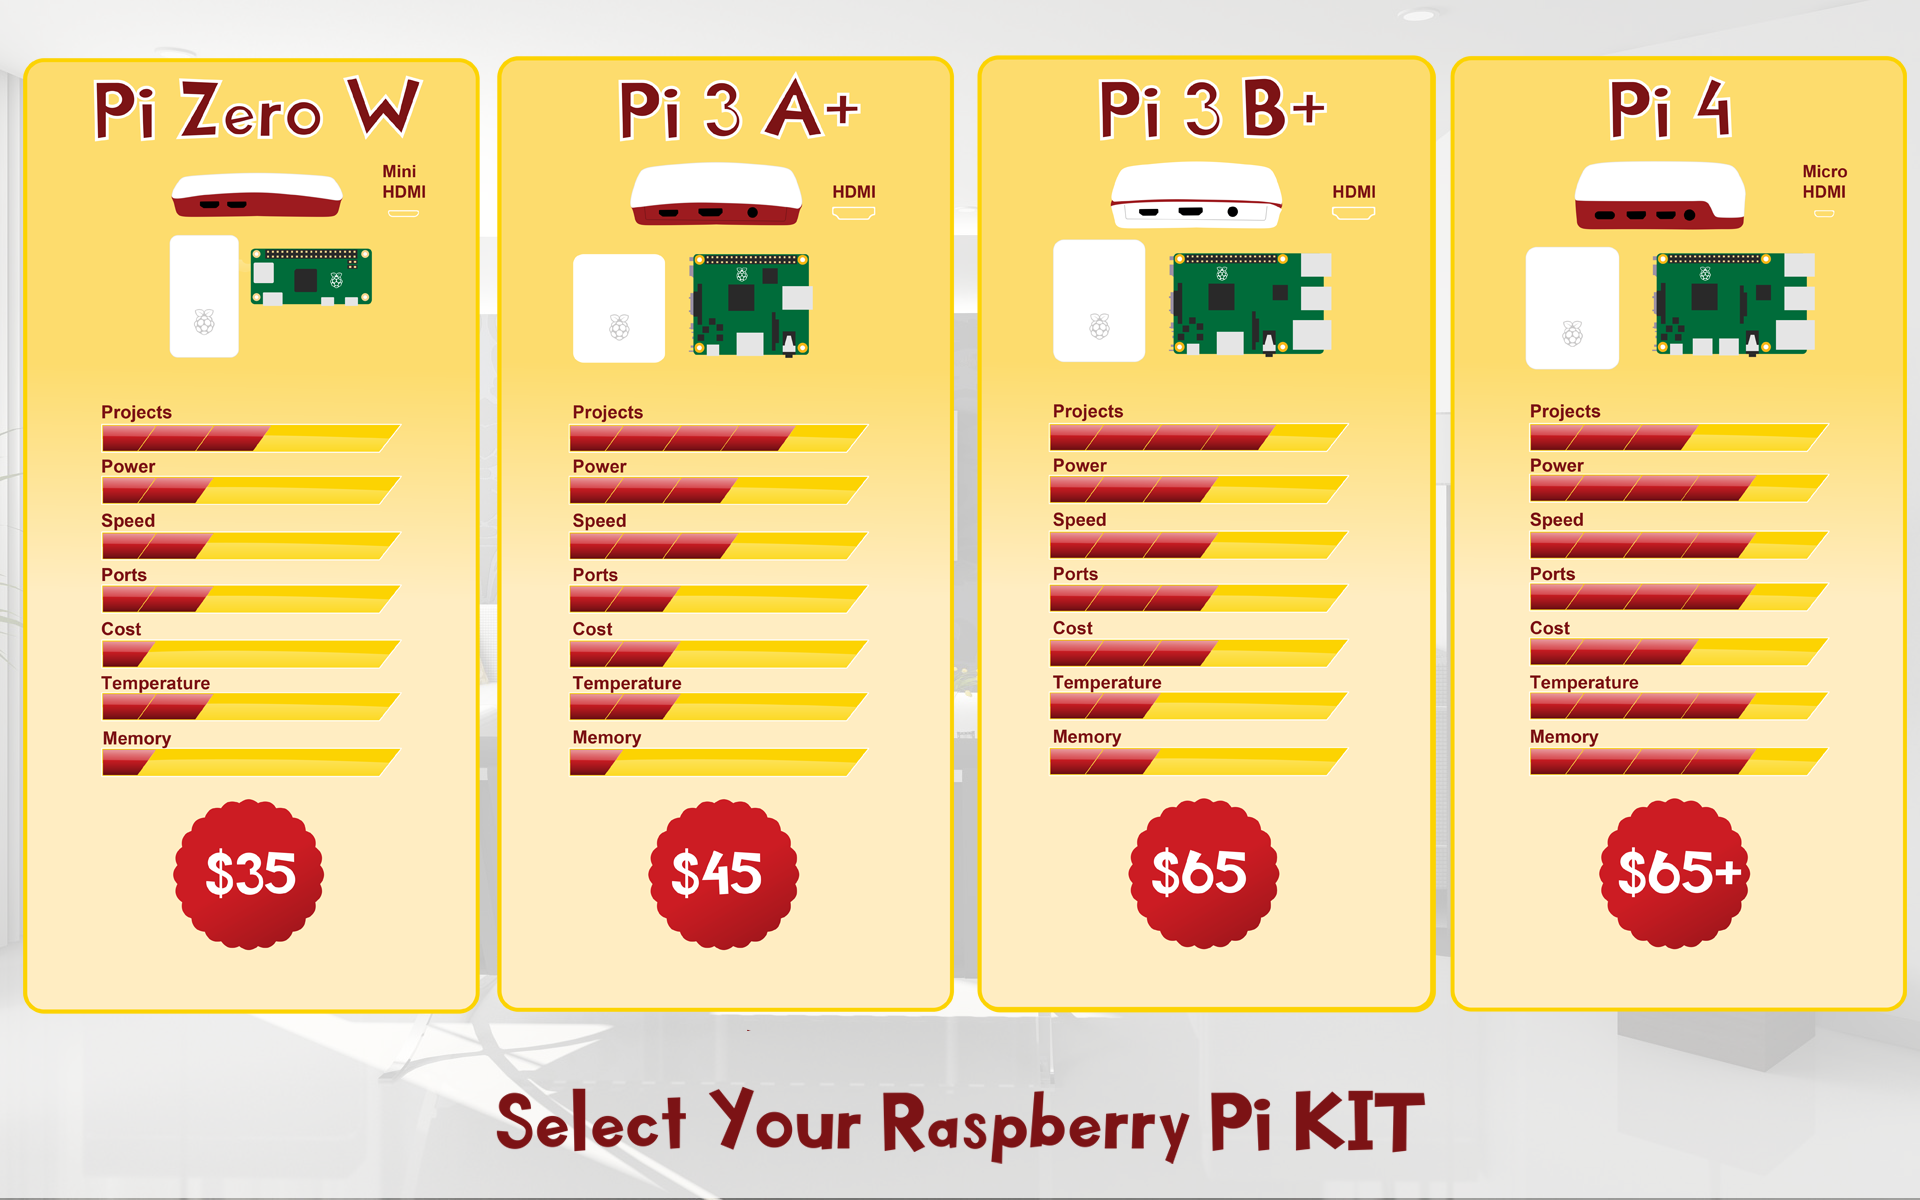 Select Your Raspberry Pi Kit